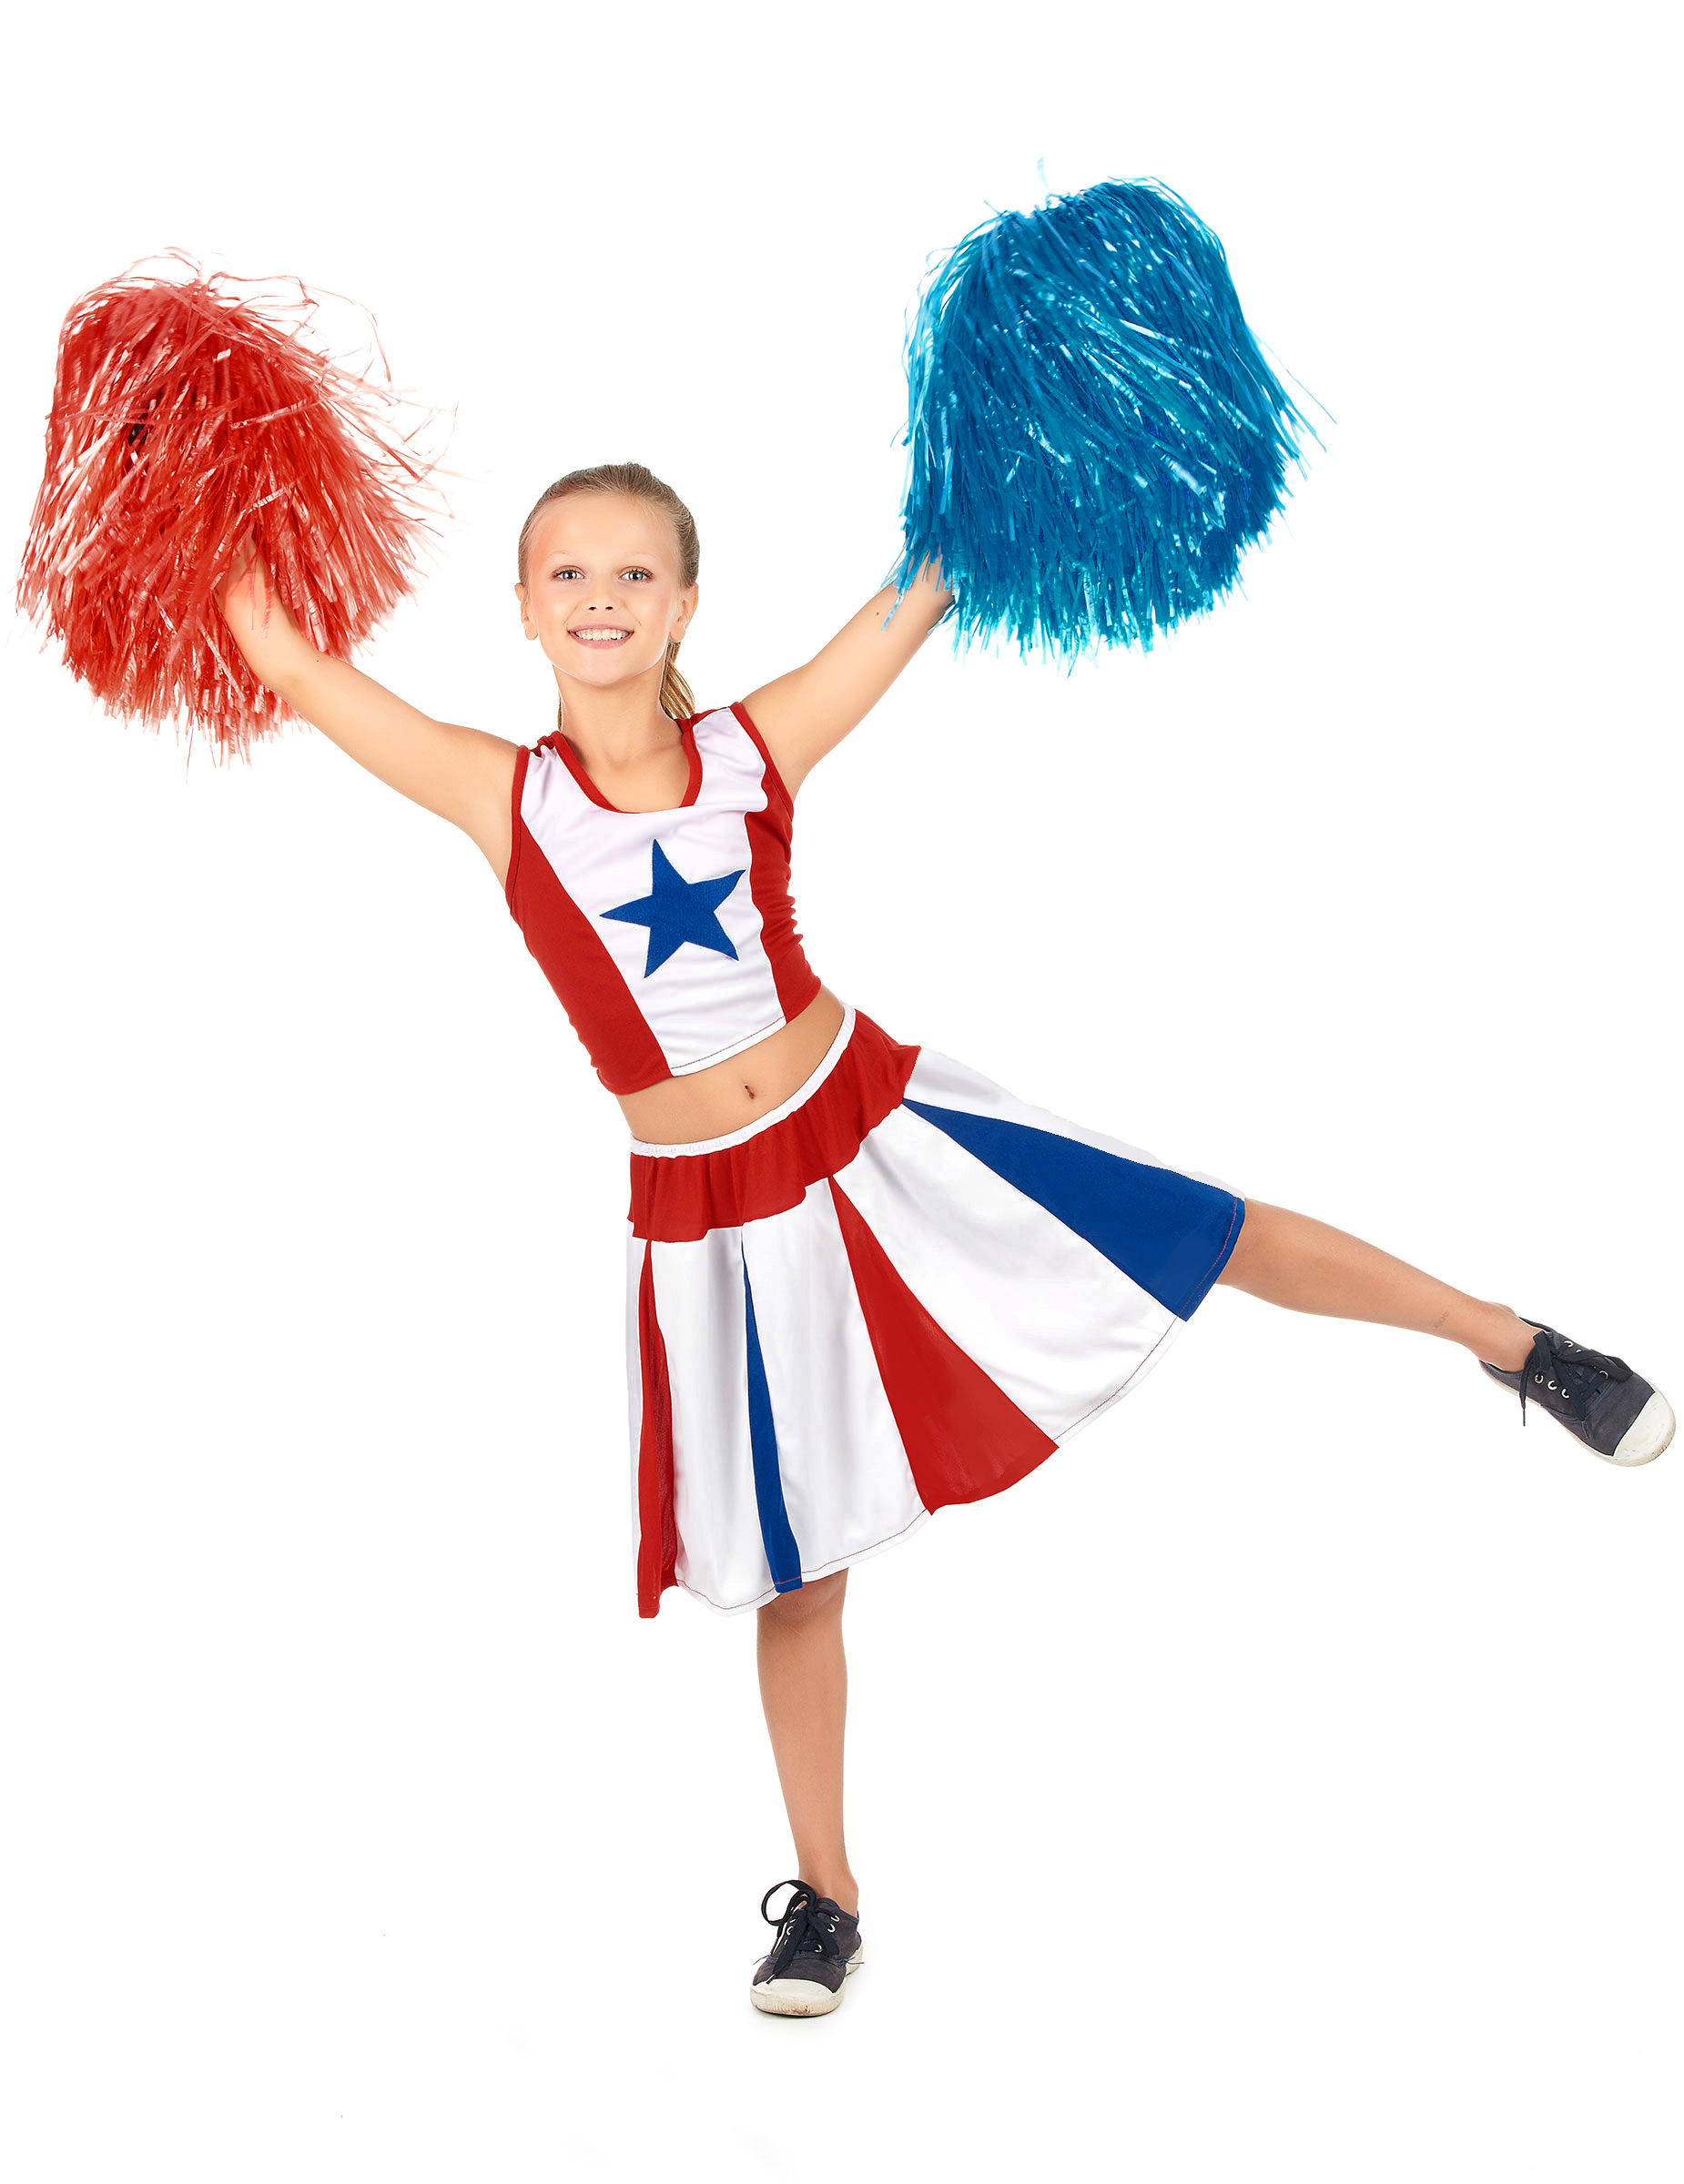 Cheerleader Kostum Fur Madchen Gunstige Faschings Kostume Bei